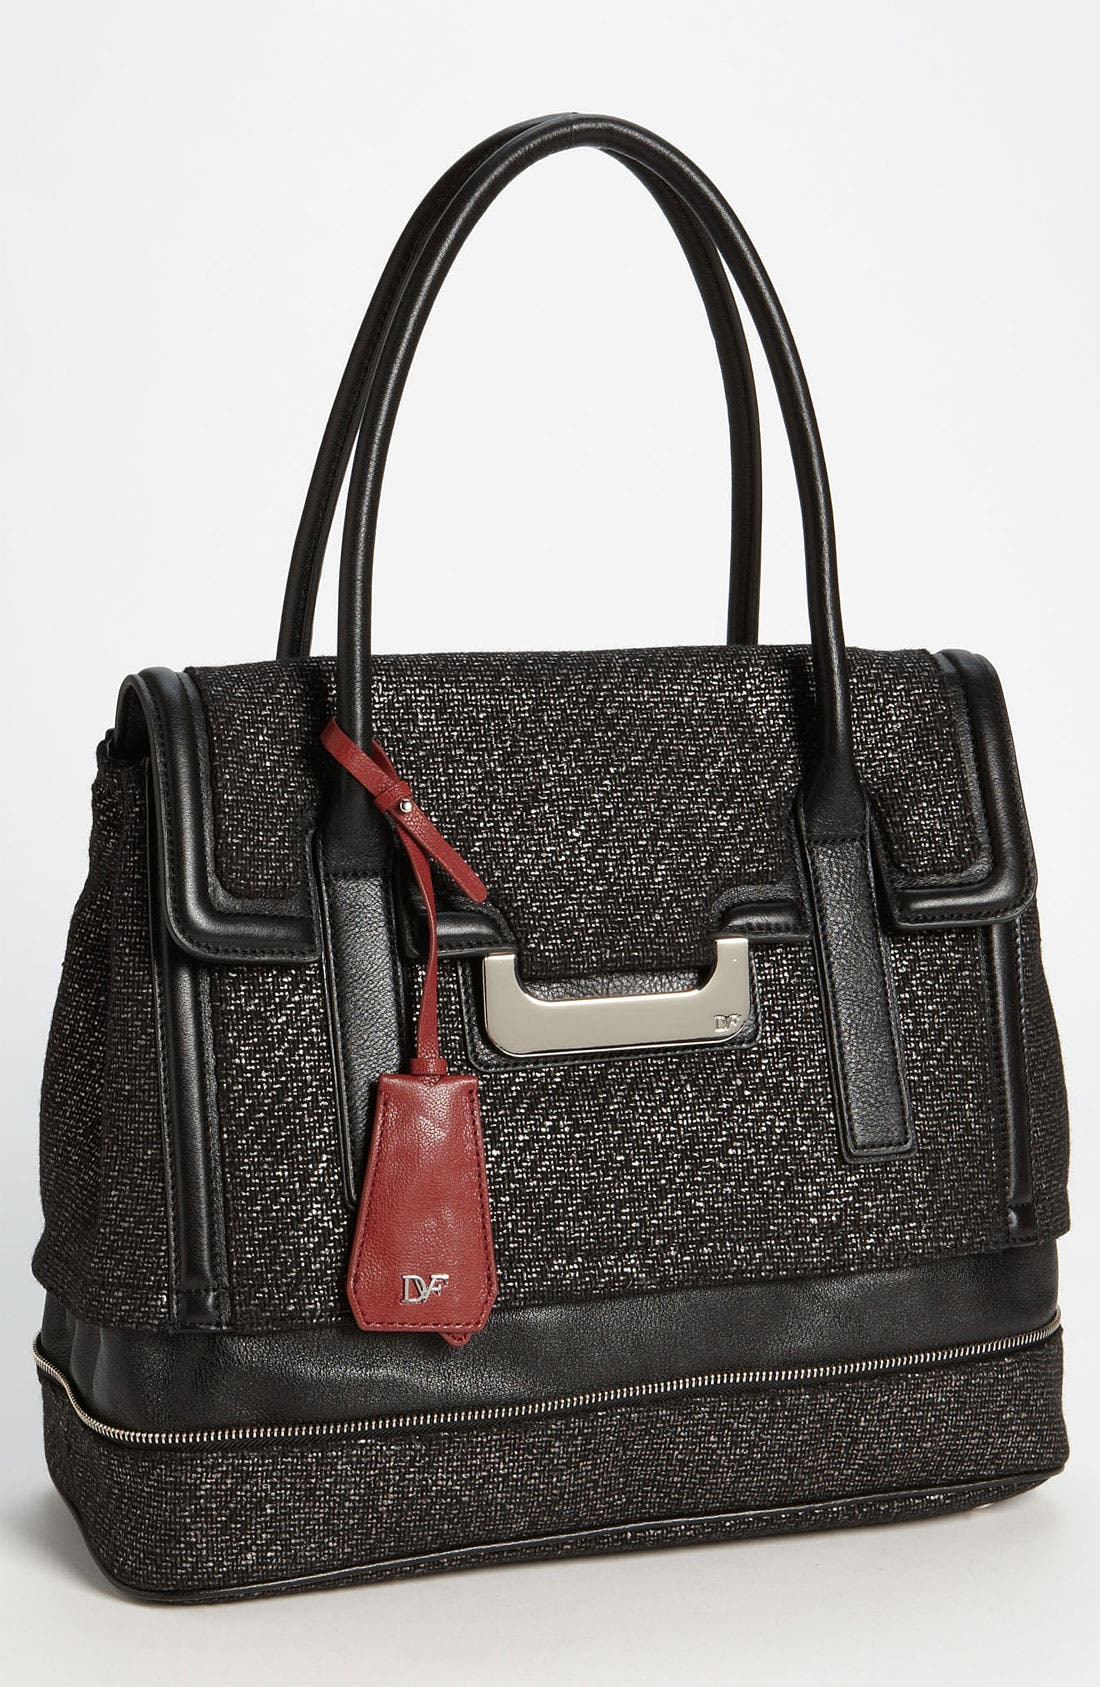 Main Image - Diane von Furstenberg 'New Harper - Laurel' Tweed Shoulder Bag